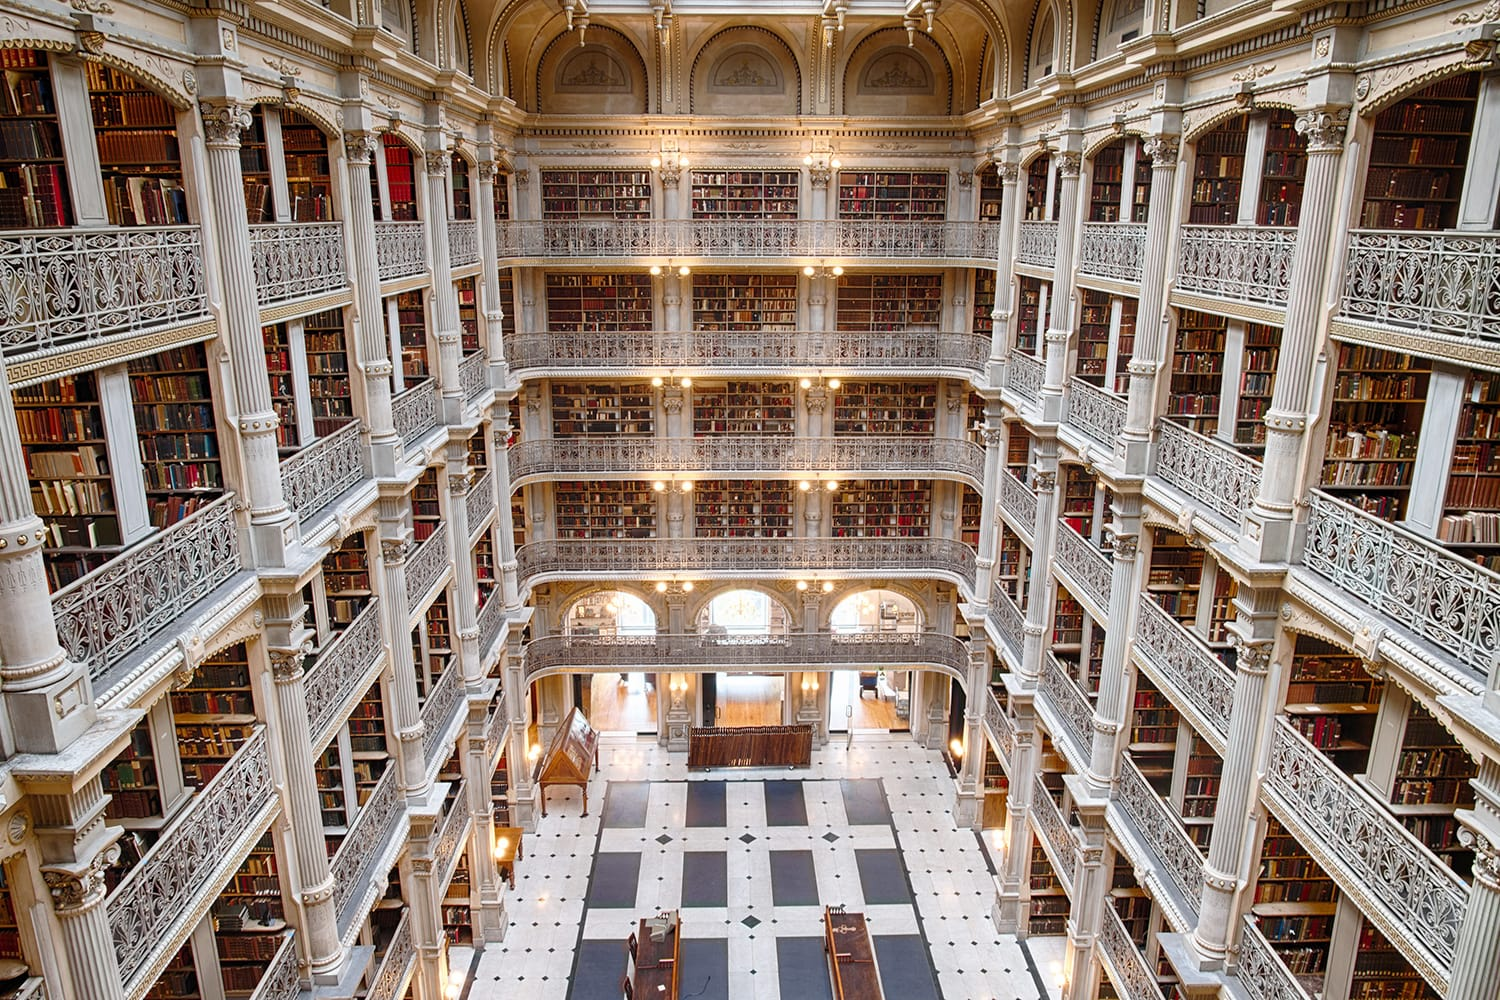 Bookshelf inside Peabody Library a research library for John Hopkins University in Baltimore, USA